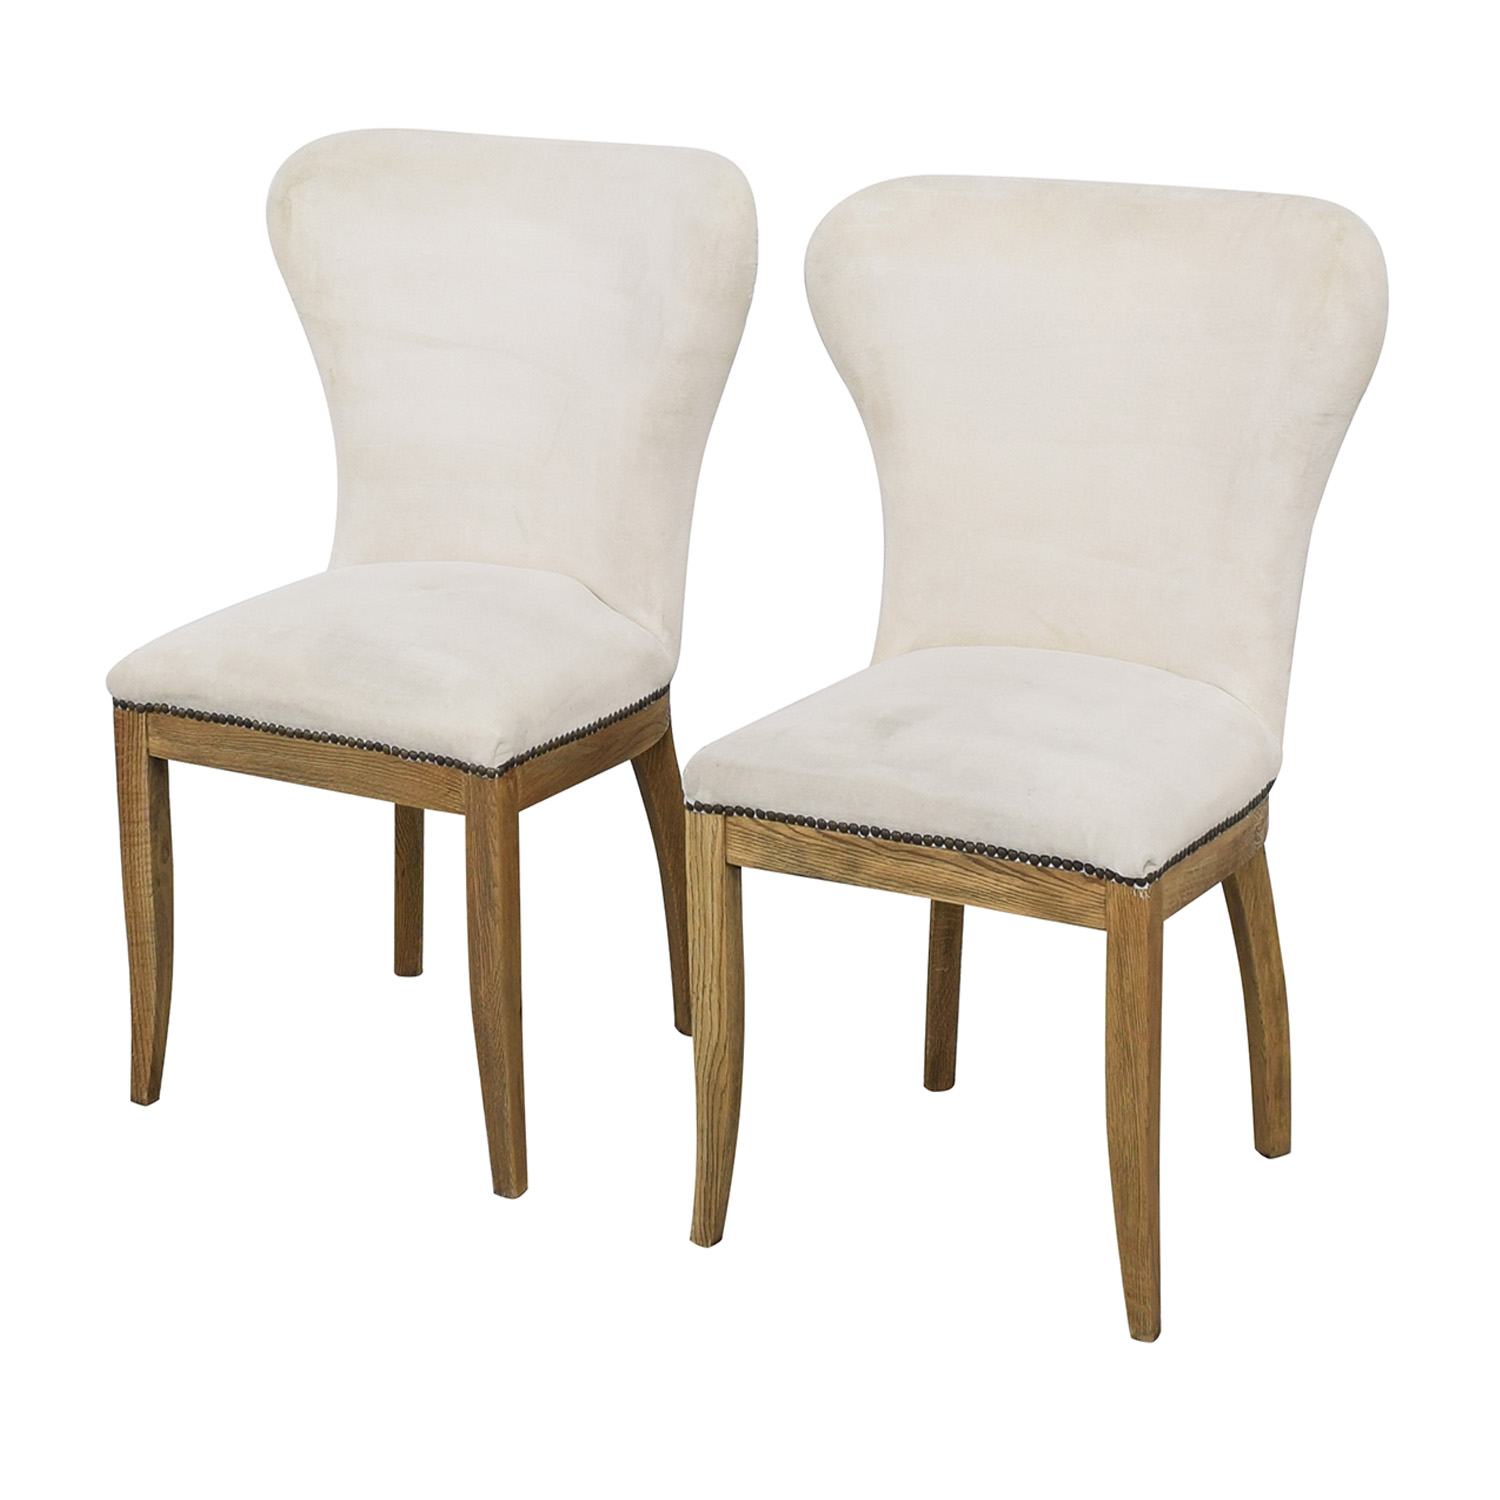 Restoration Hardware Restoration Hardware Upholstered Dining Chairs nyc